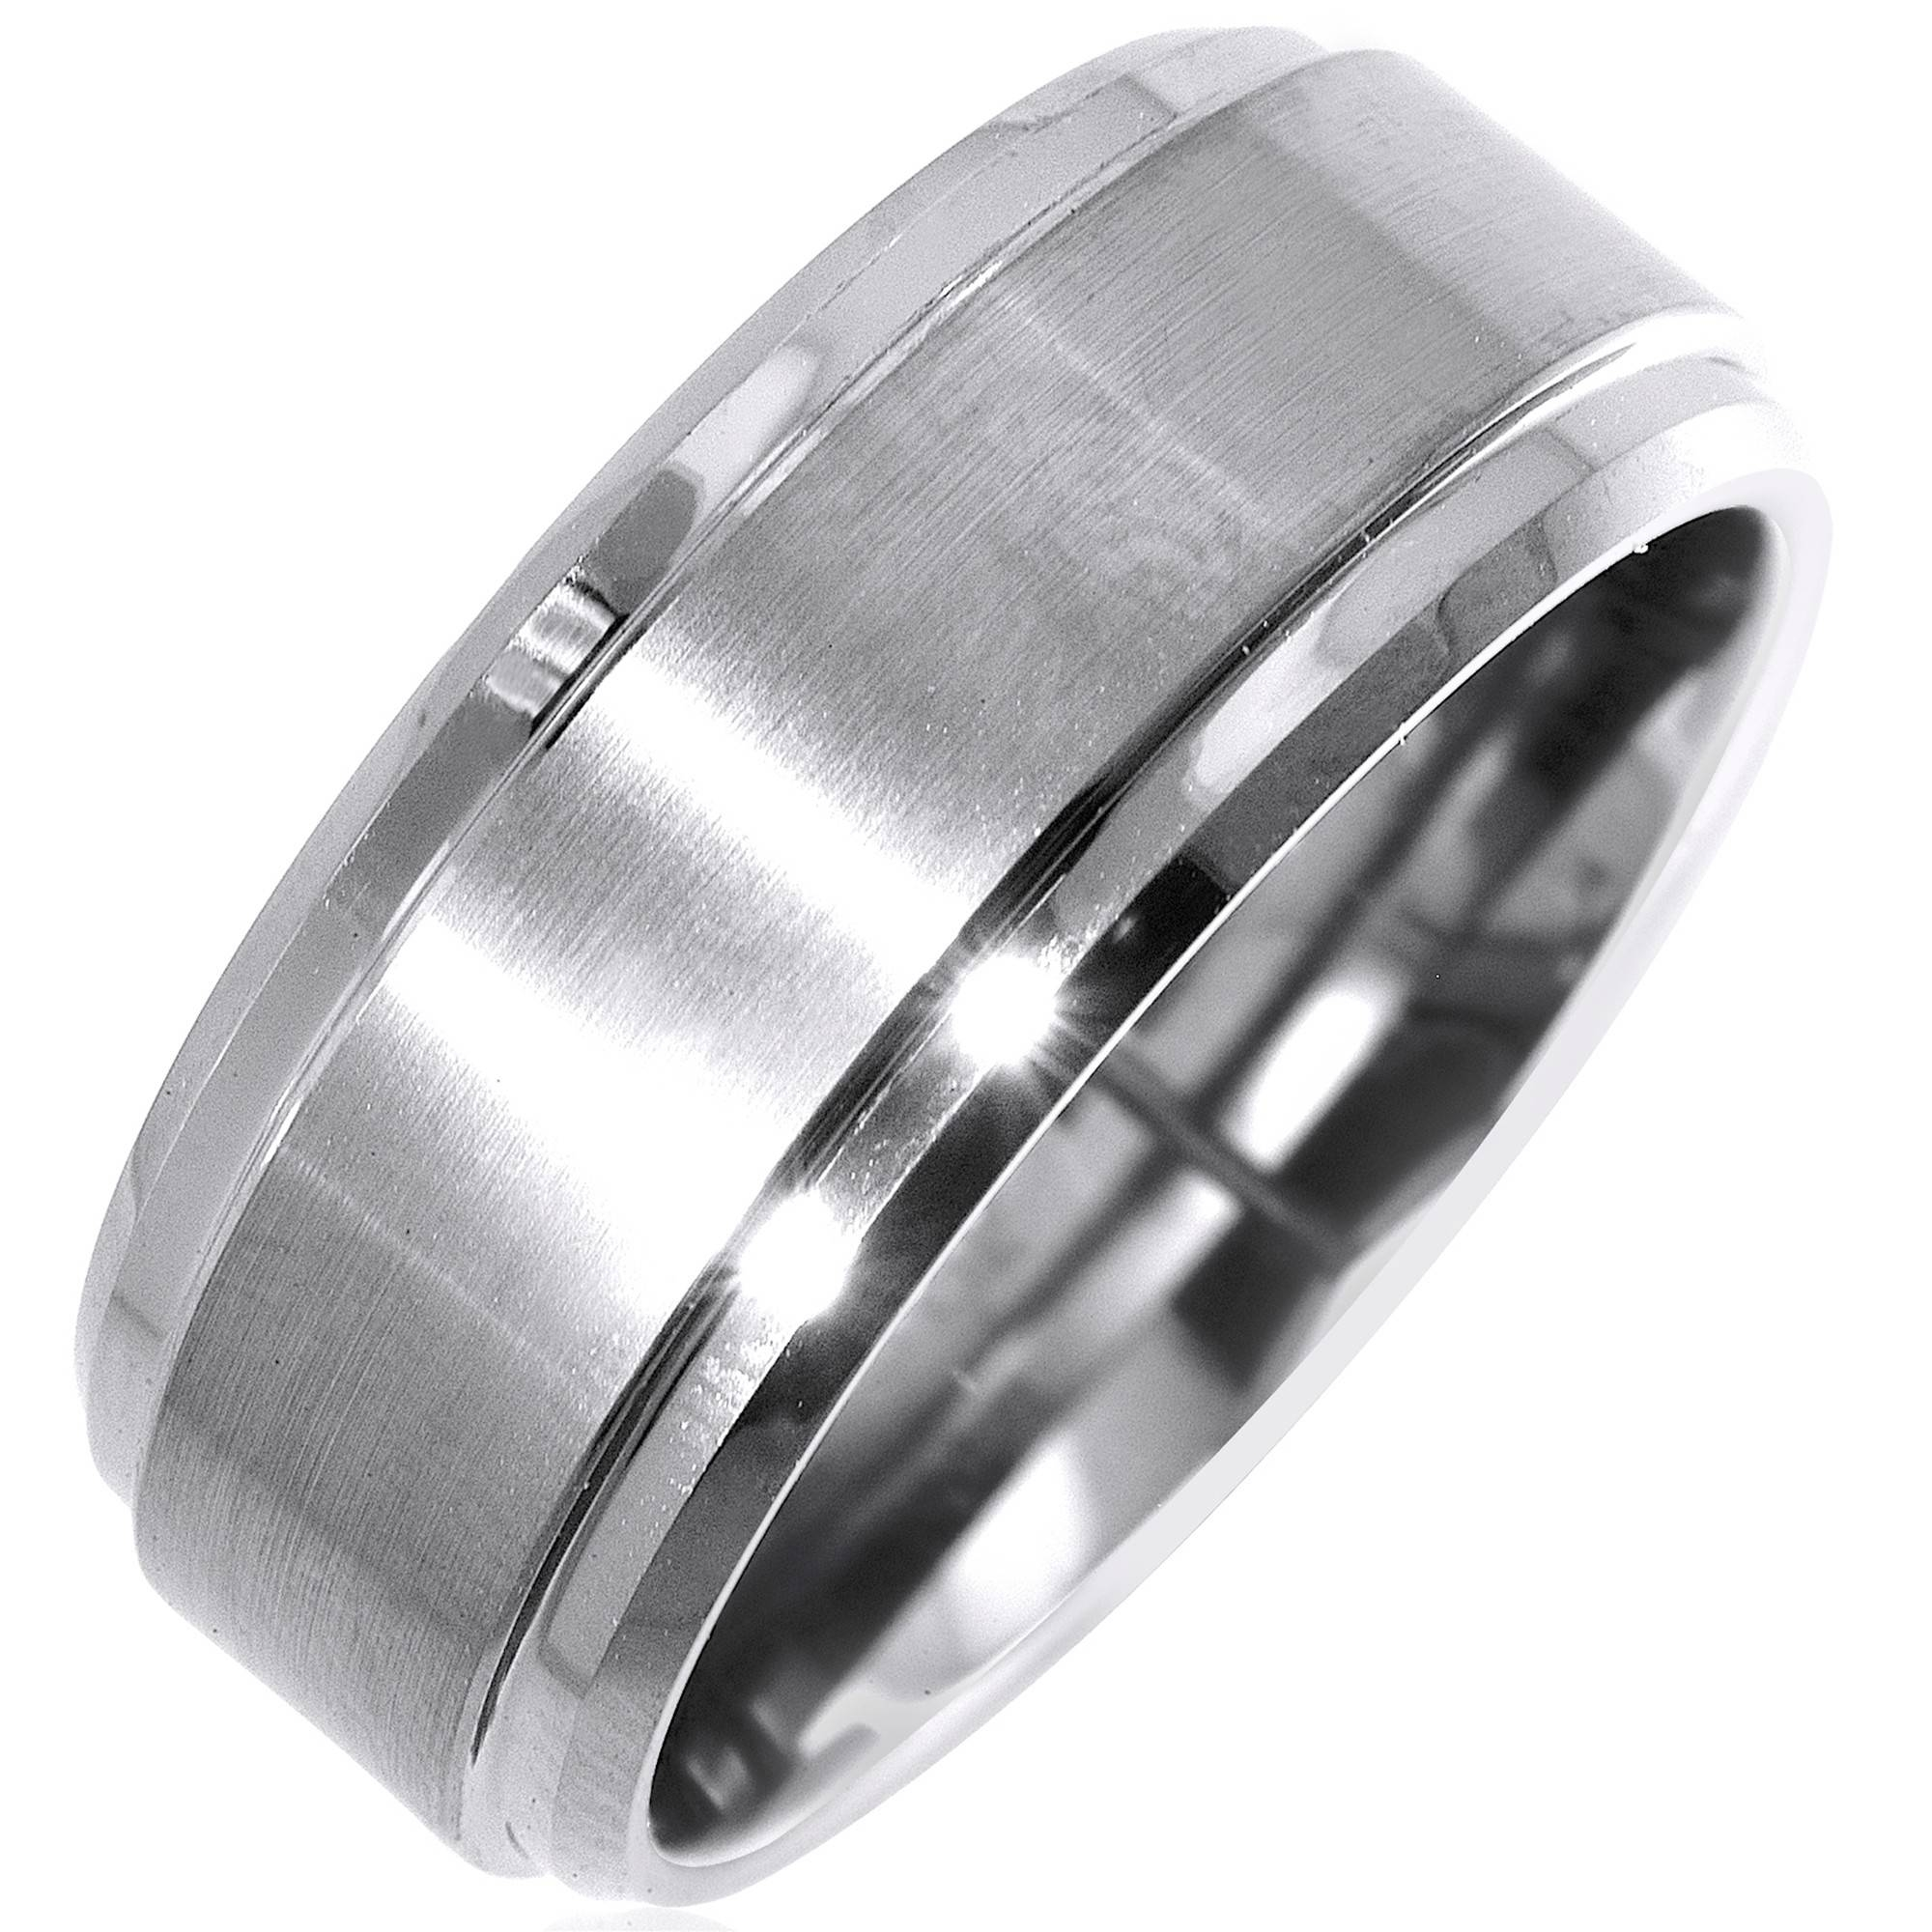 ring manooco wolfram rose silver gold stripes carbide tungsten rings rgdoublelinepokoncen from products brushed